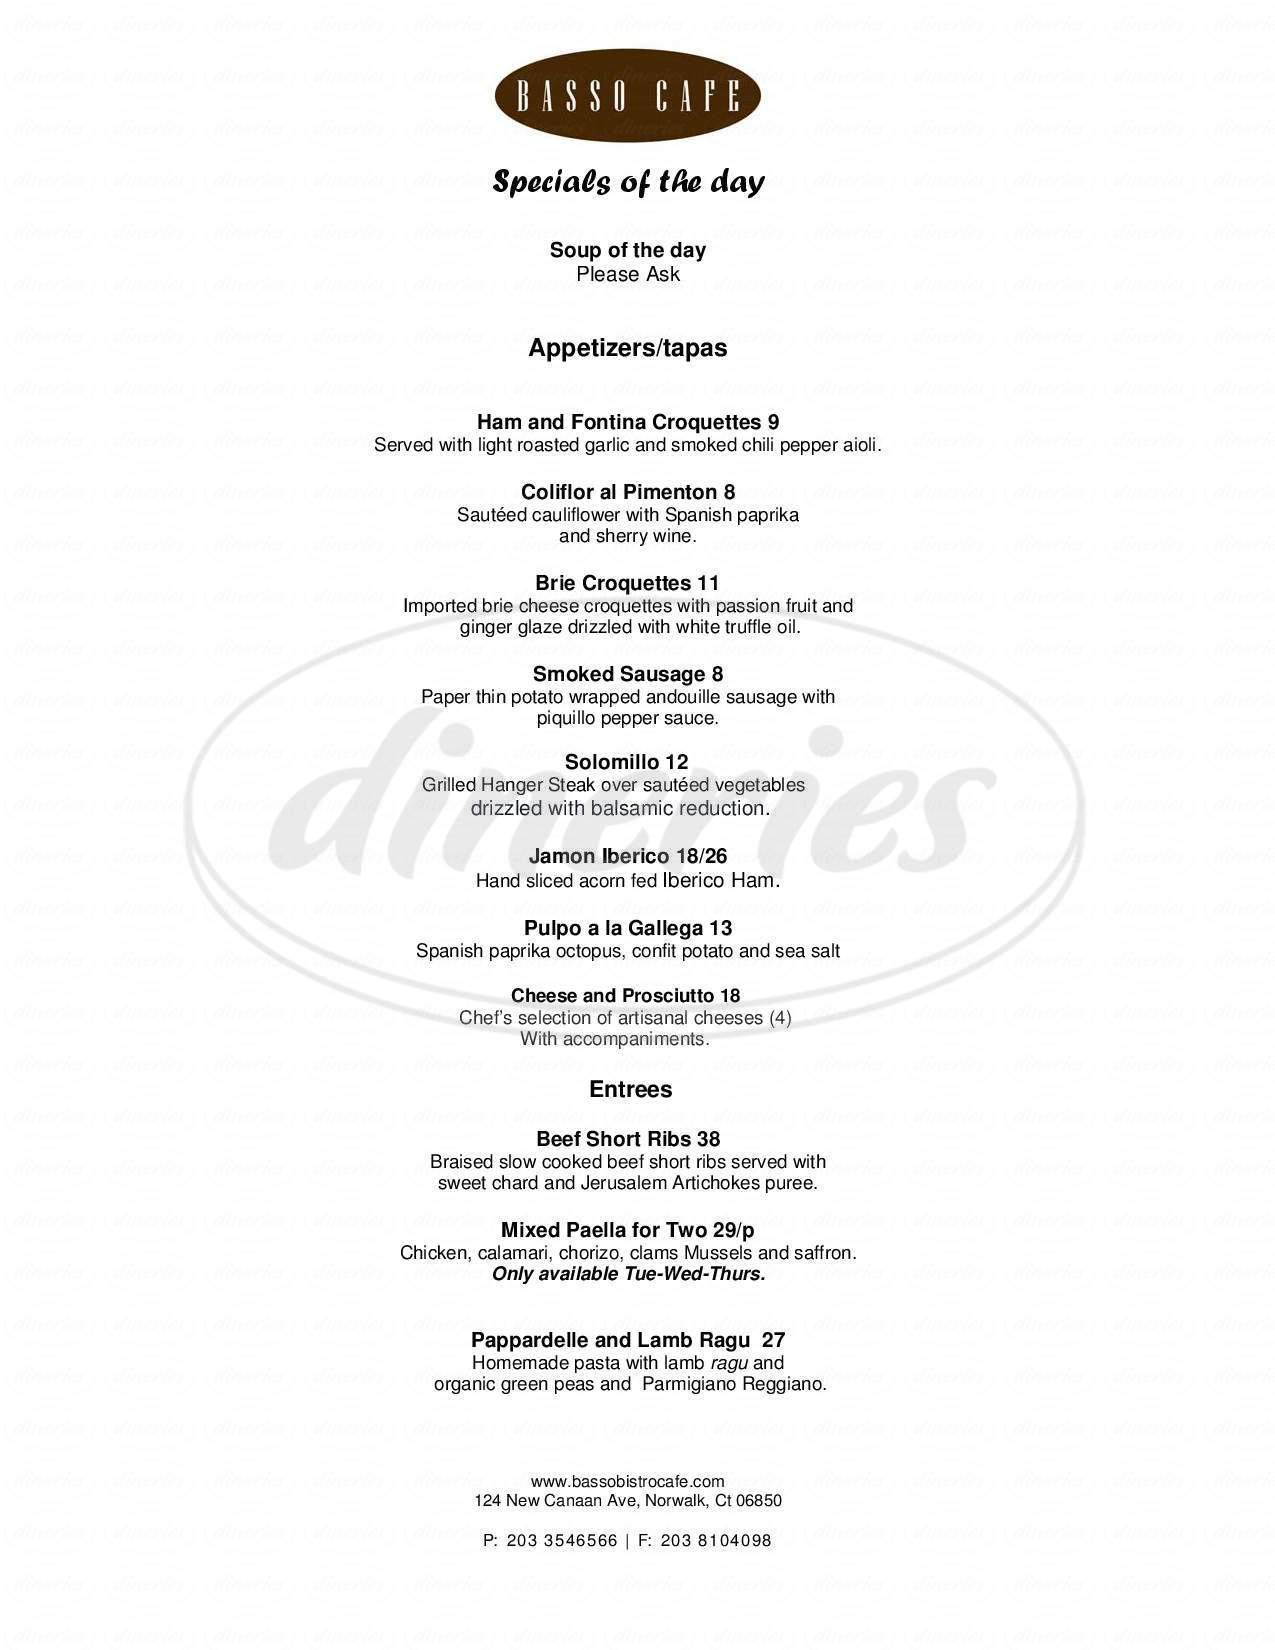 menu for Basso Cafe Restaurant